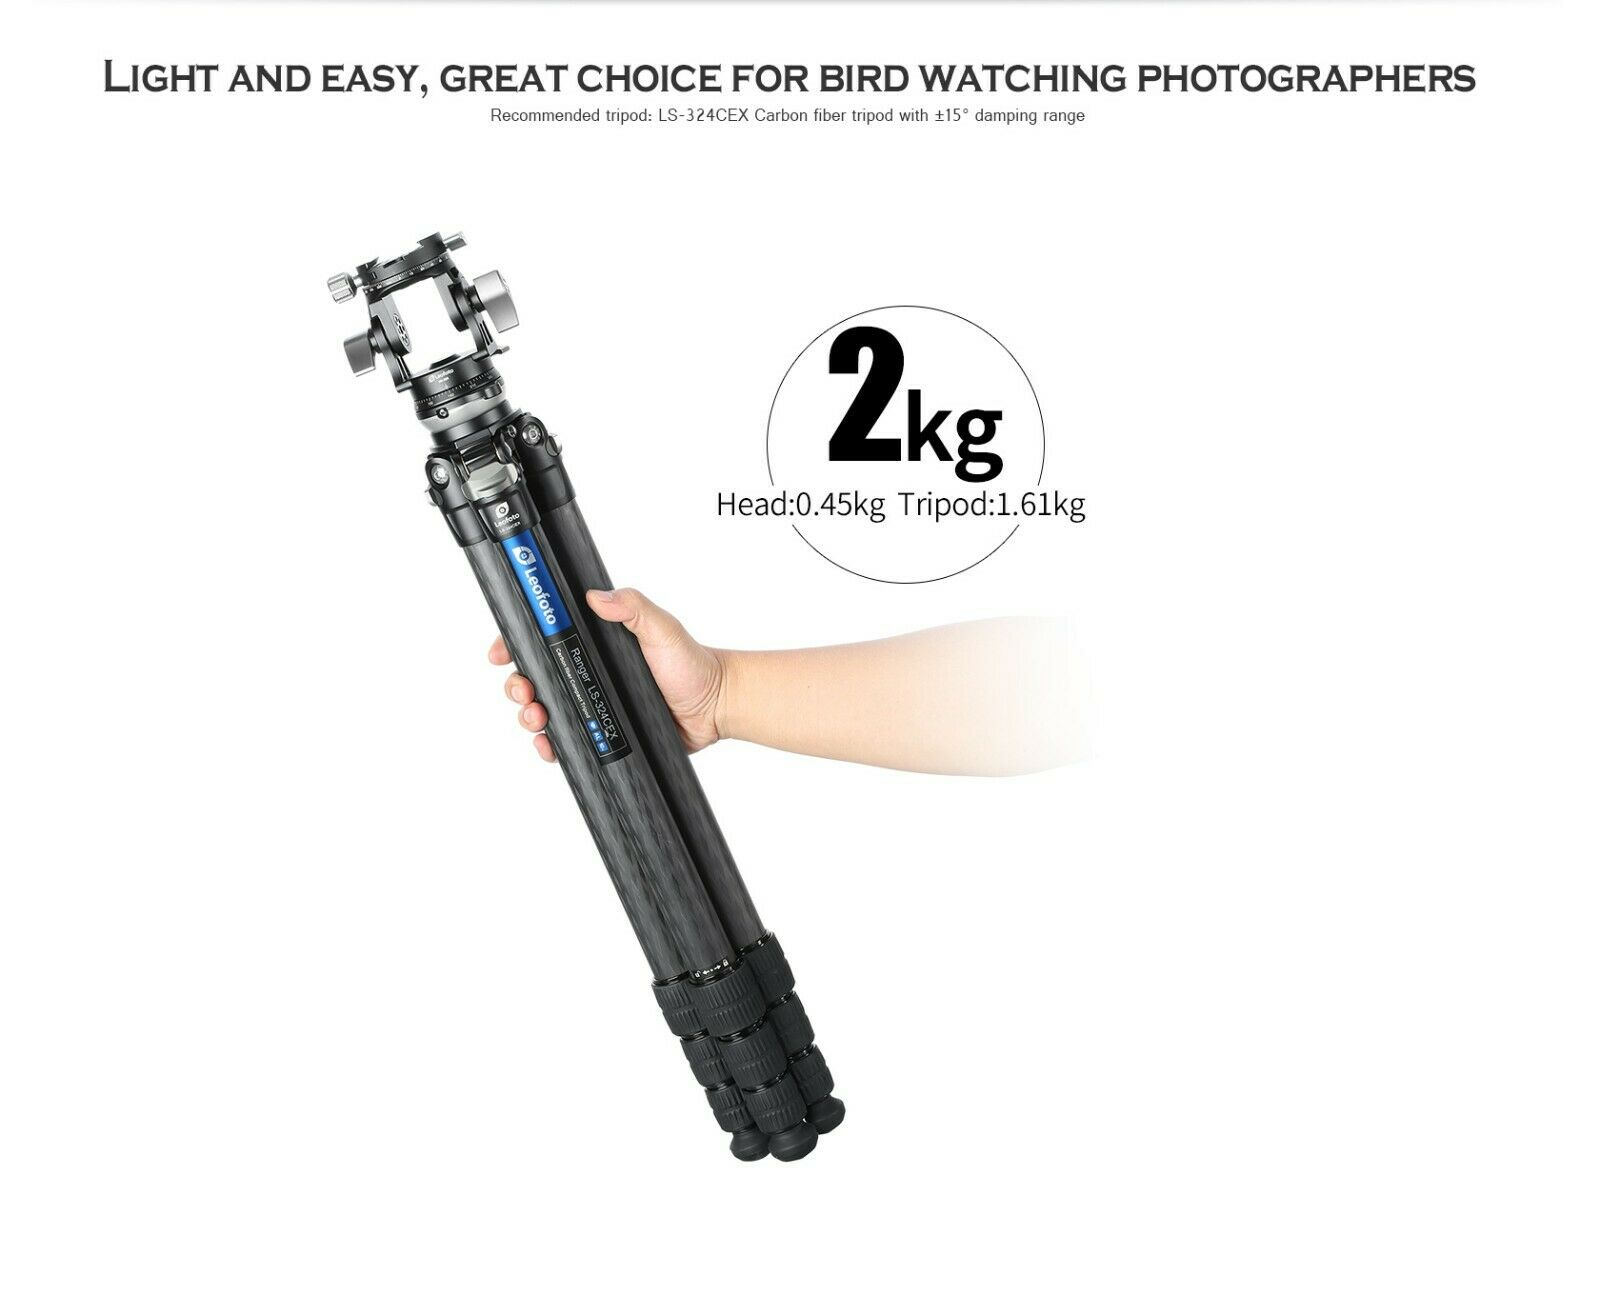 US Dealer Leofoto VH-30R Monopod 2-way Long Lens Head W/ Pano Clamp And Handle - $239.00